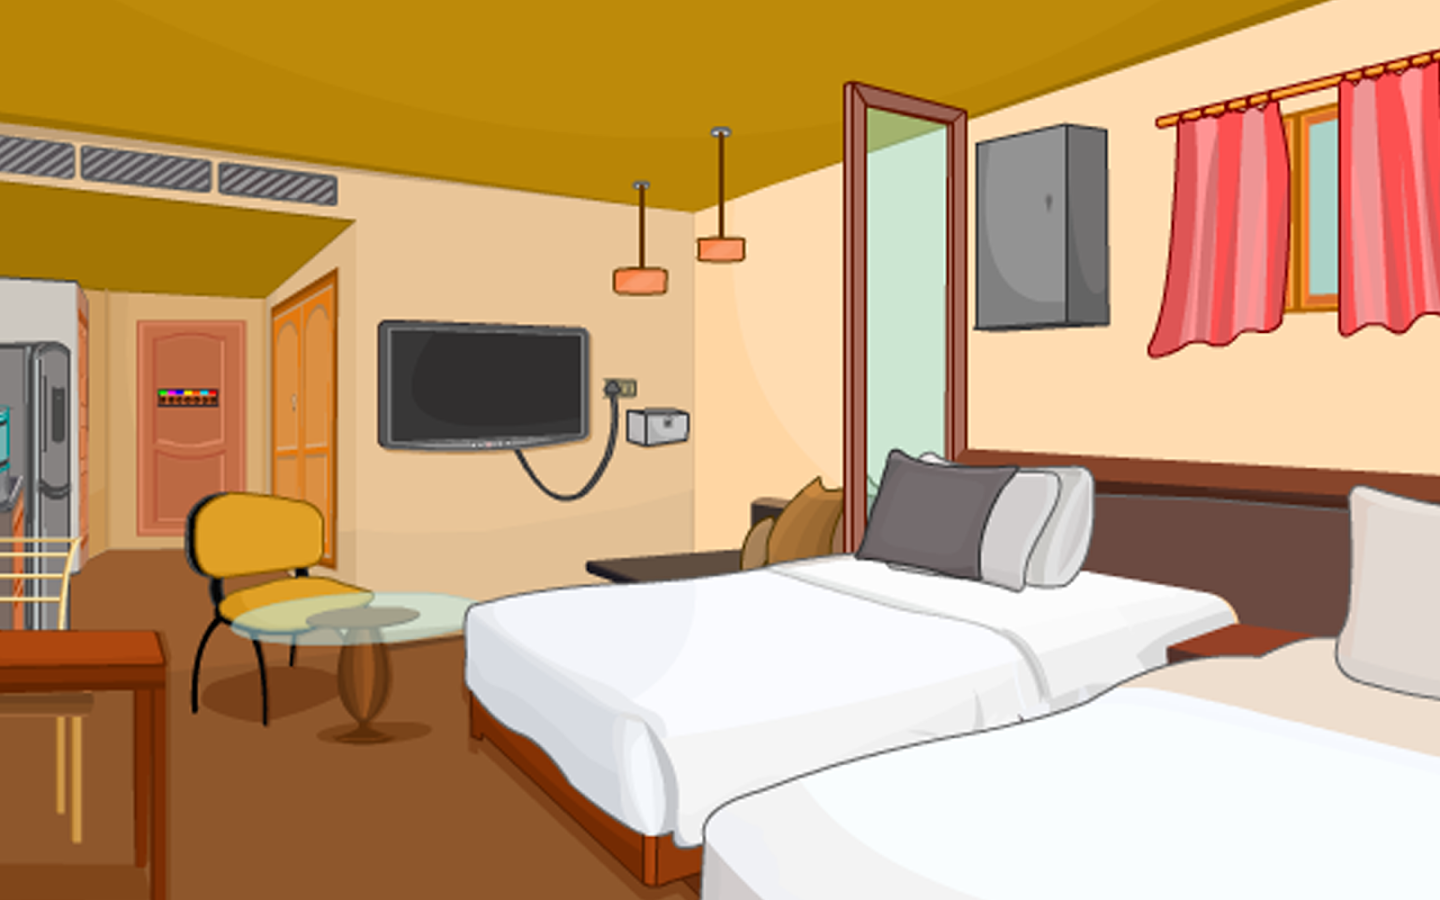 Escape puzzle apartment rooms android apps on google play for Small room escape 12